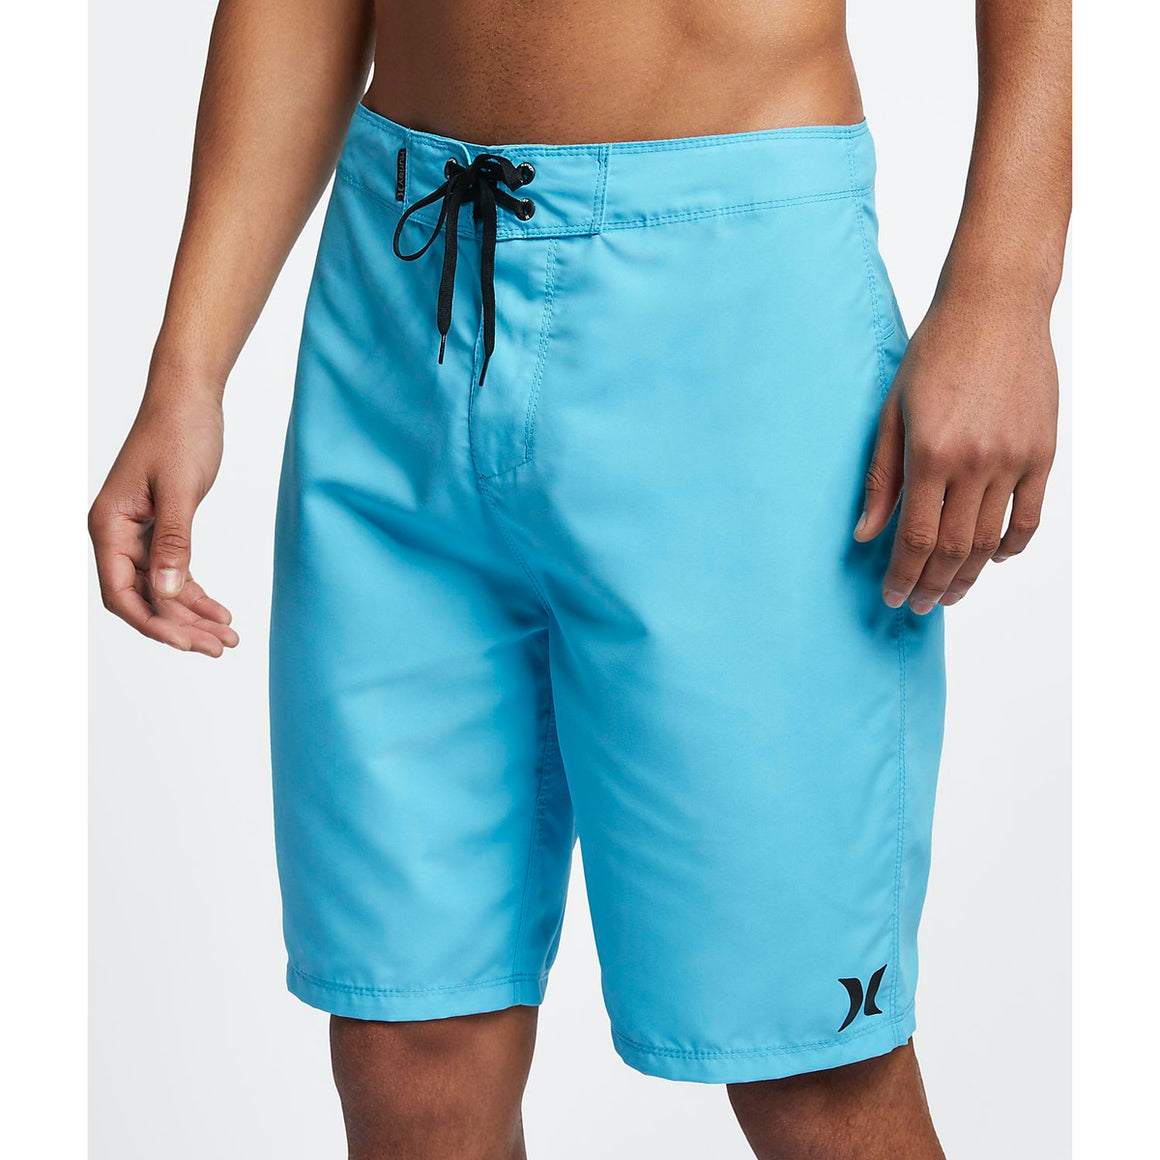 Boardshorts - Hurley Phantom OAO 2.0 BDST 21 - Blue Fury (422)